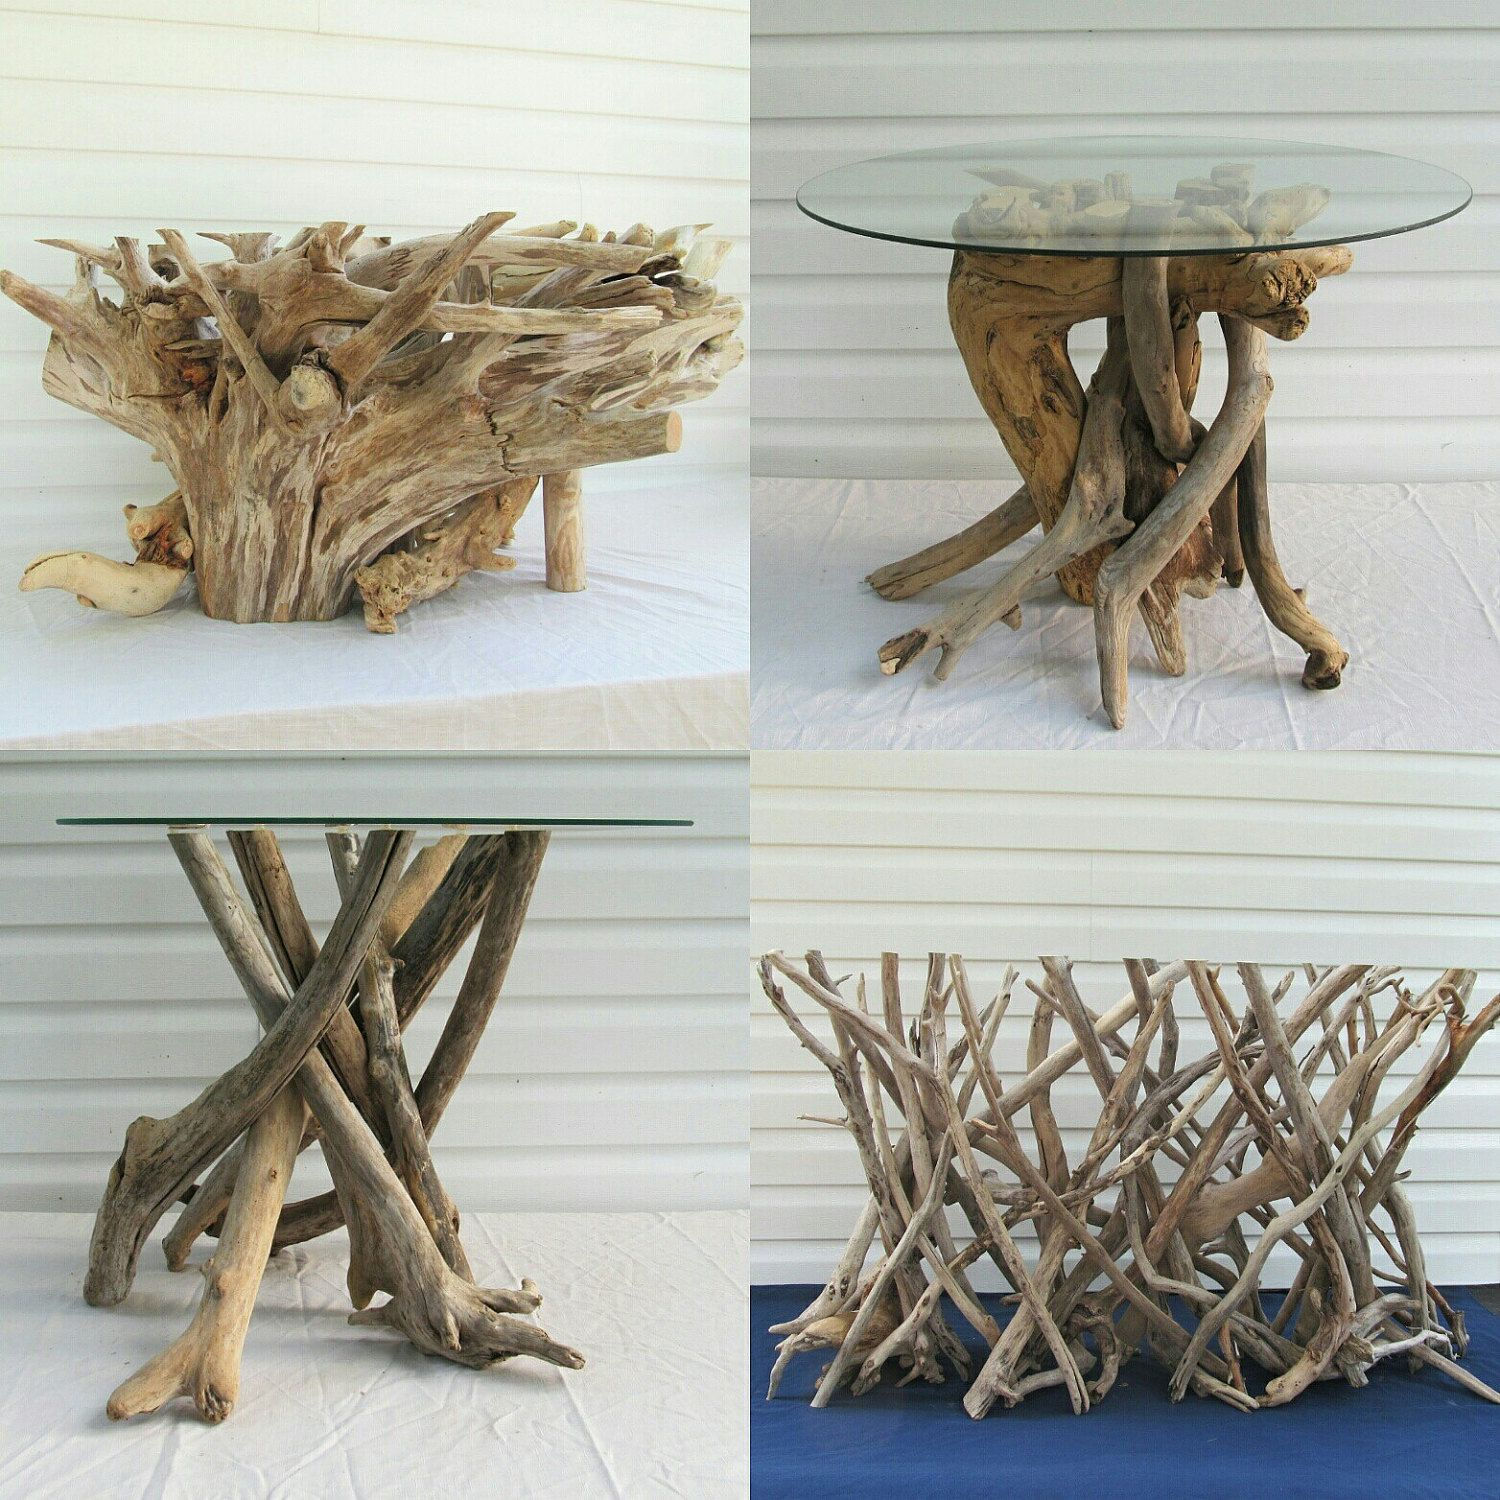 Check Out A Few Of Our Awesome Driftwood Tables Www Driftingconcepts